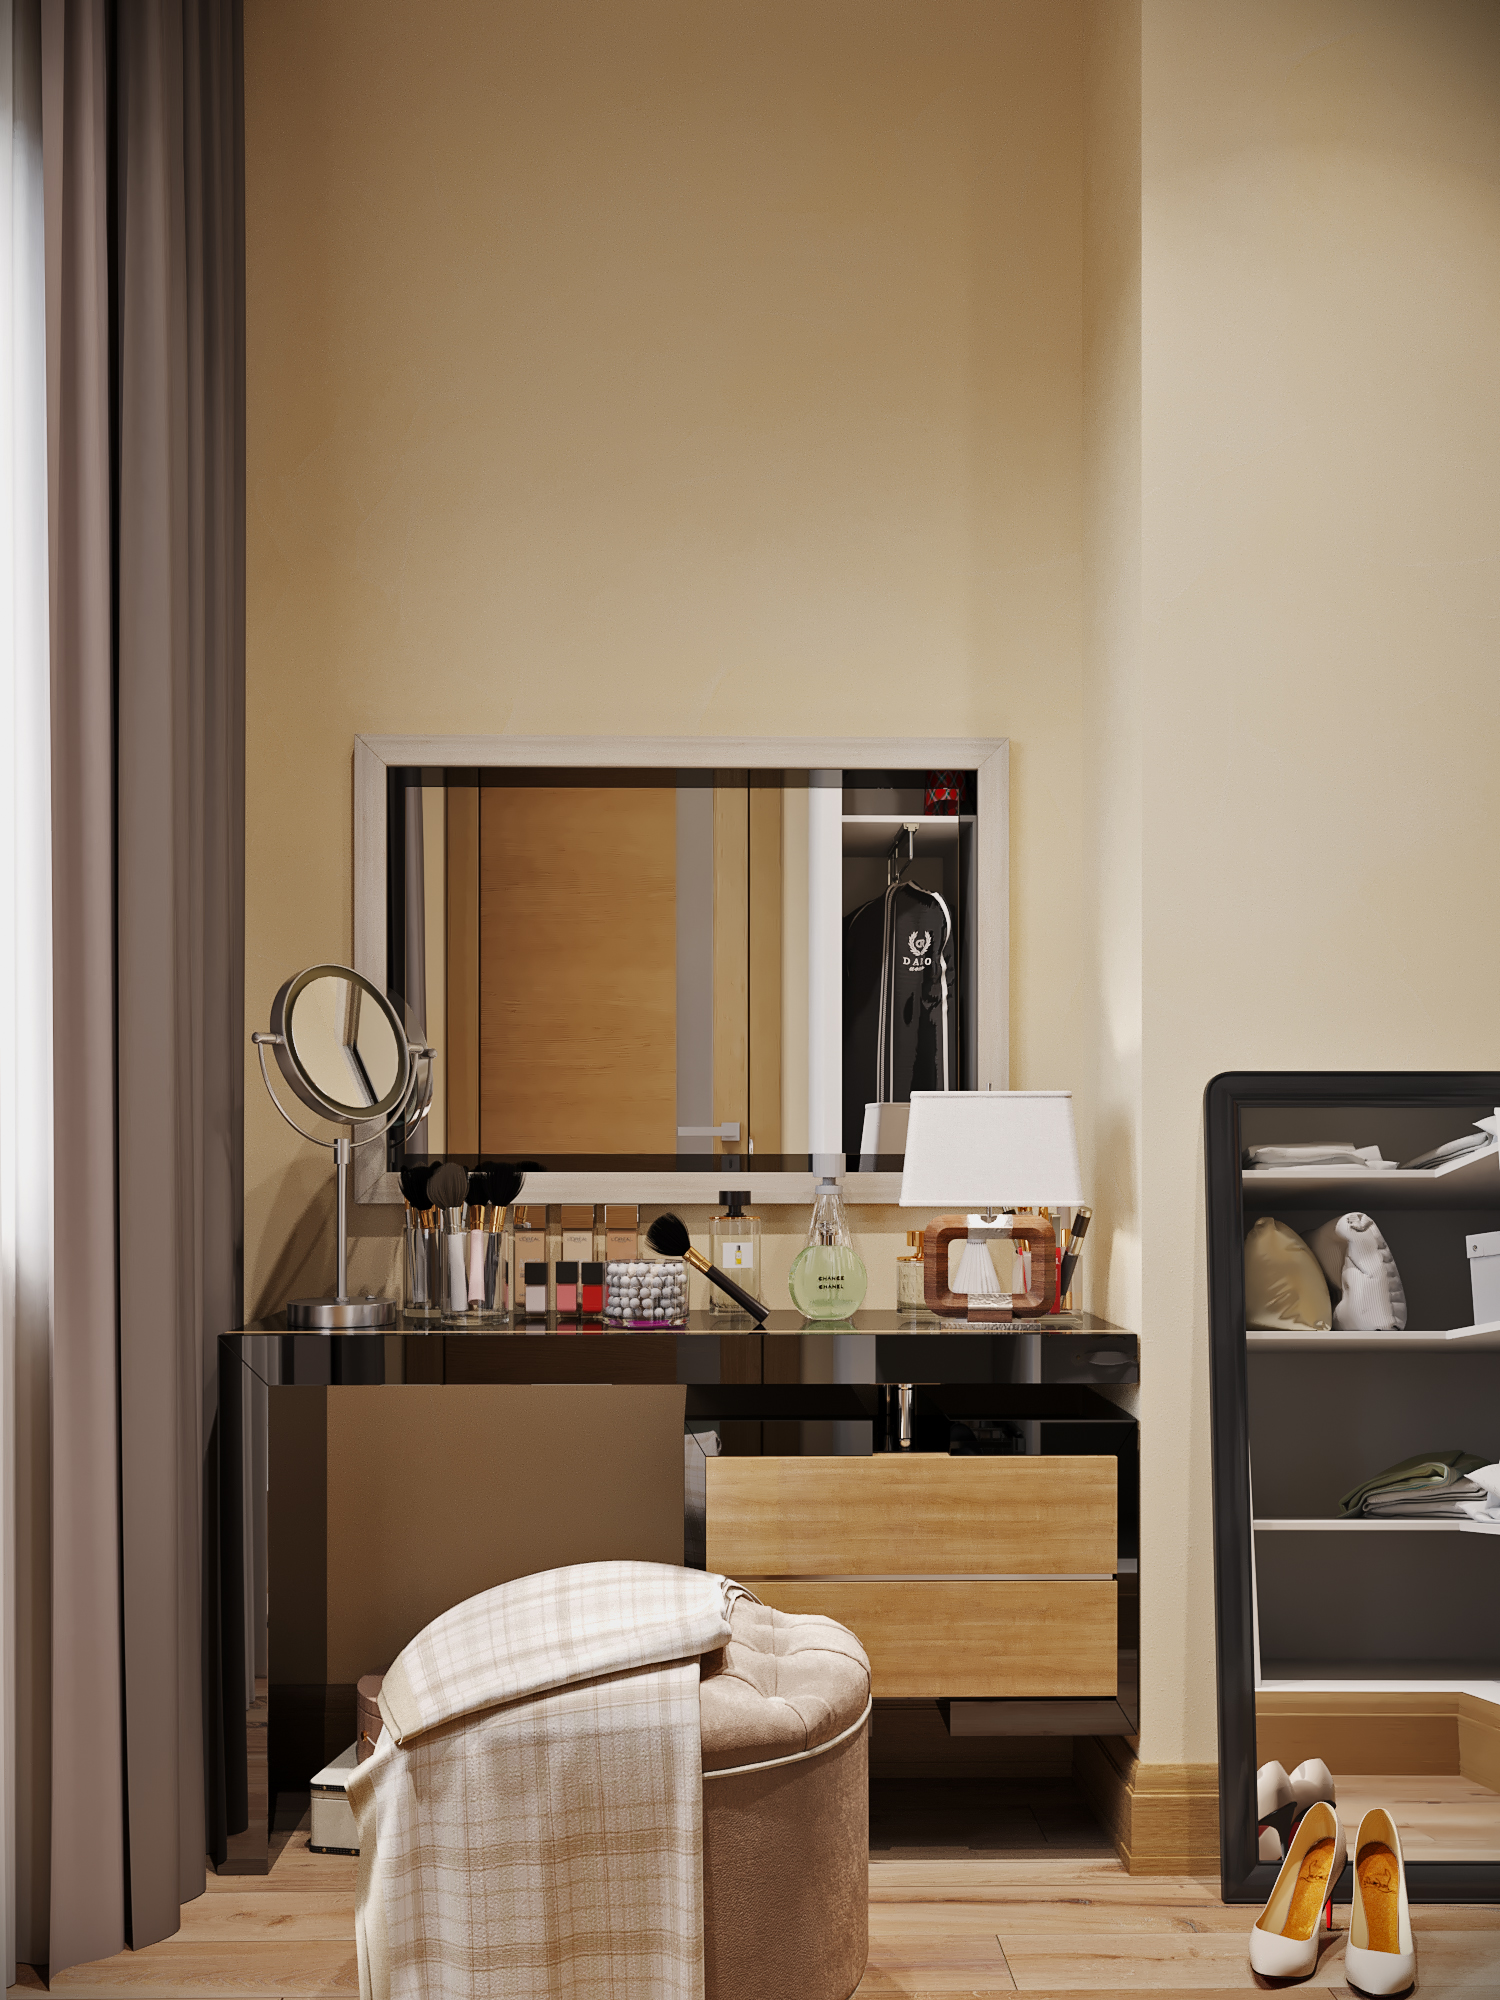 Townhouse. Visualization of the dressing room in 3d max corona render image